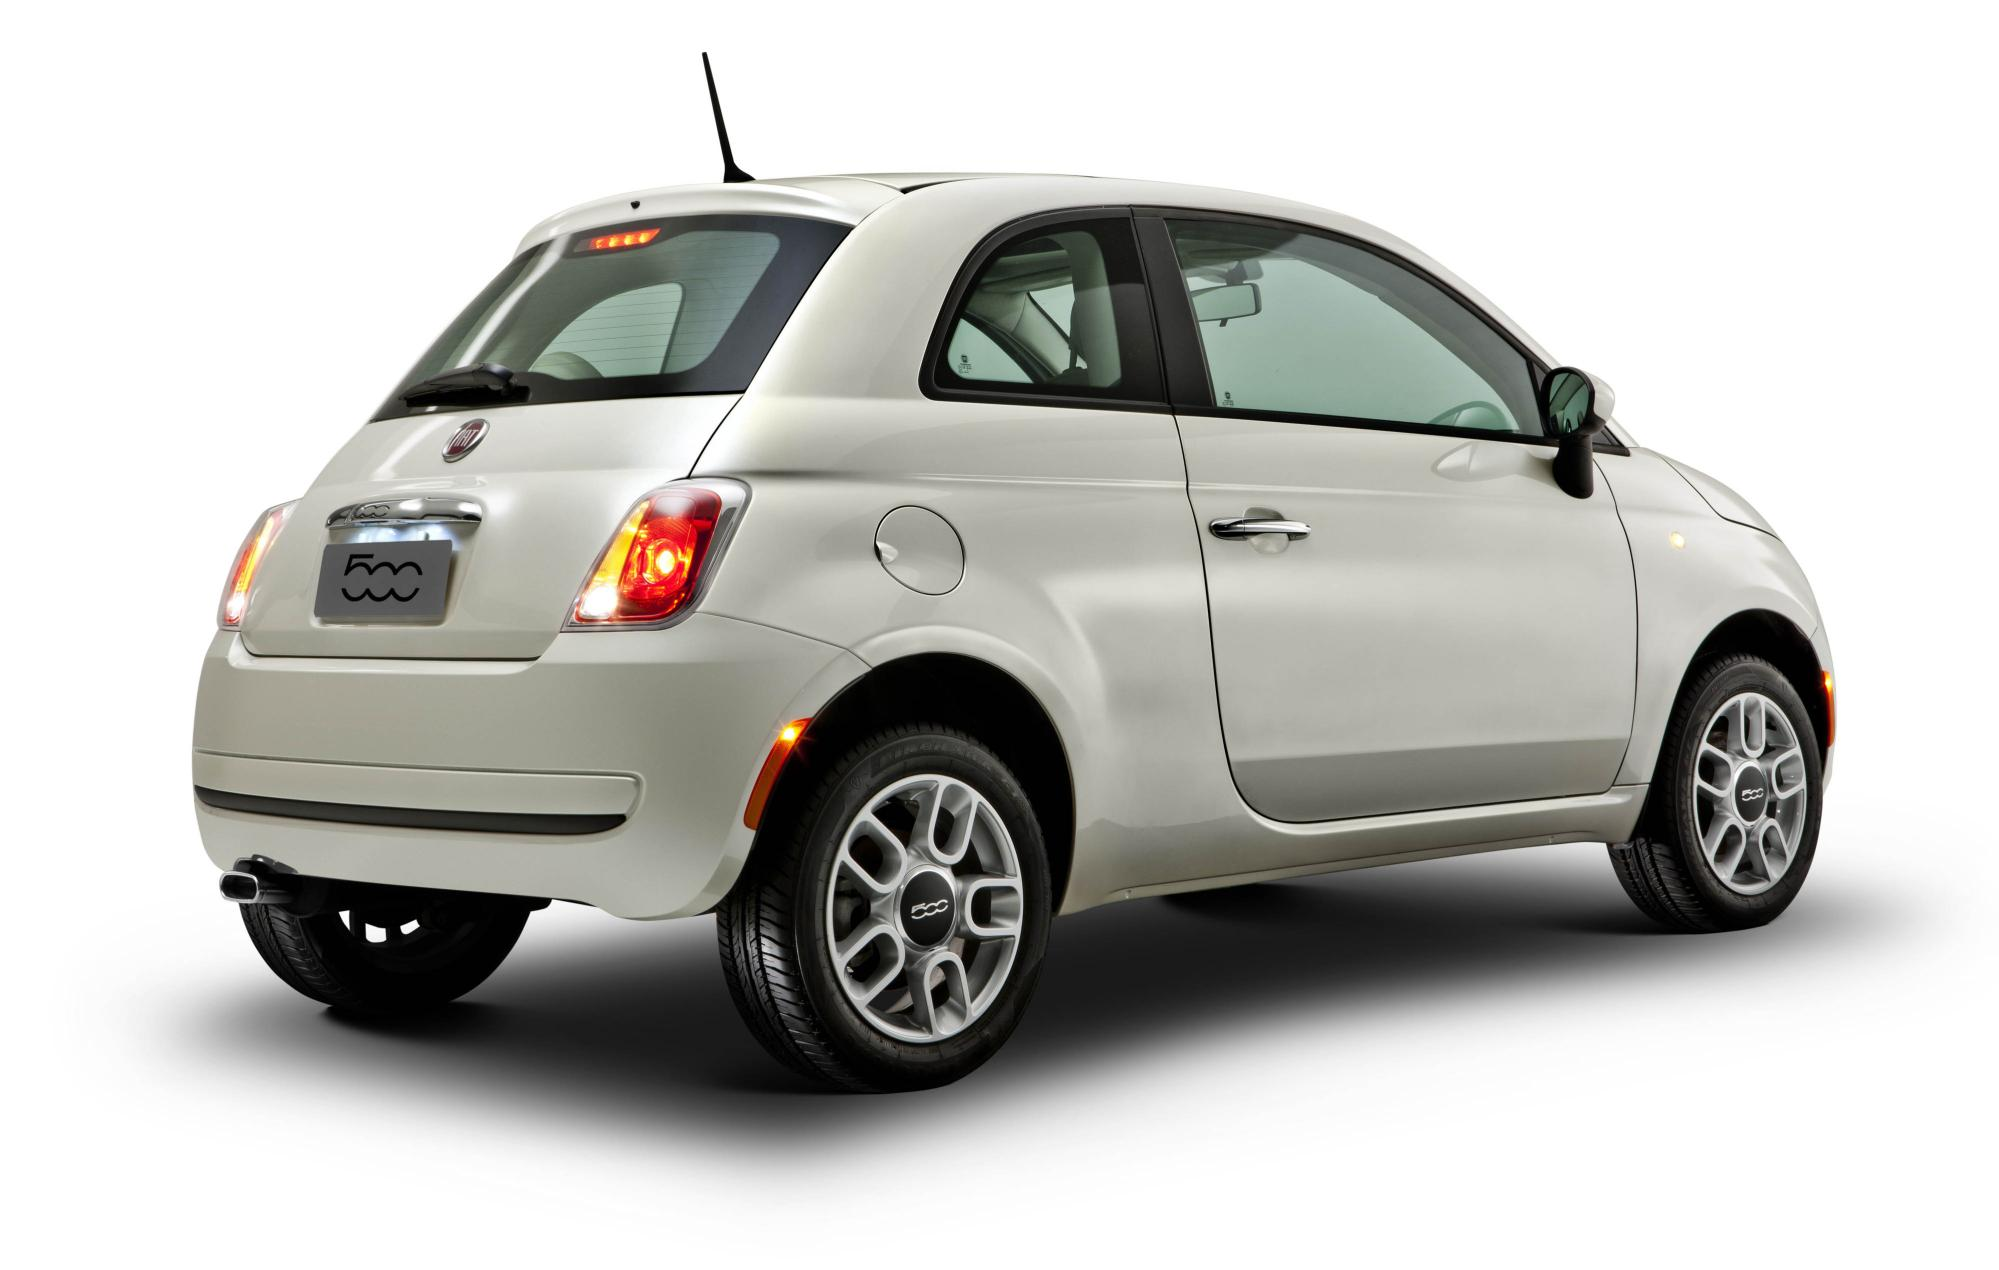 Fiat 500 2004 Review Amazing Pictures And Images Look